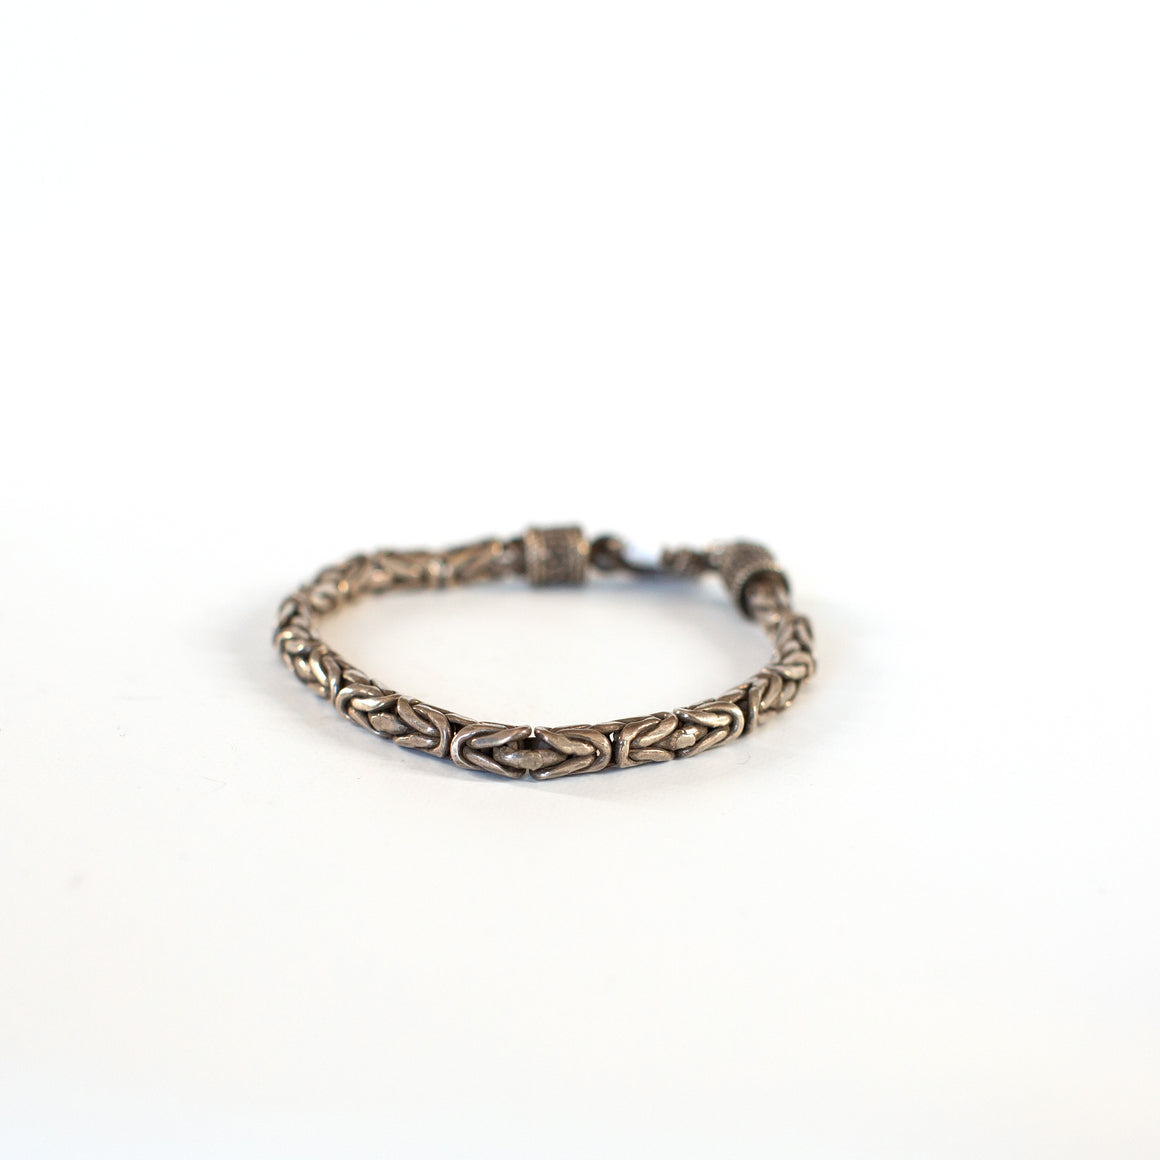 VINTAGE JEWELRY | STERLING ROPE BRACELET